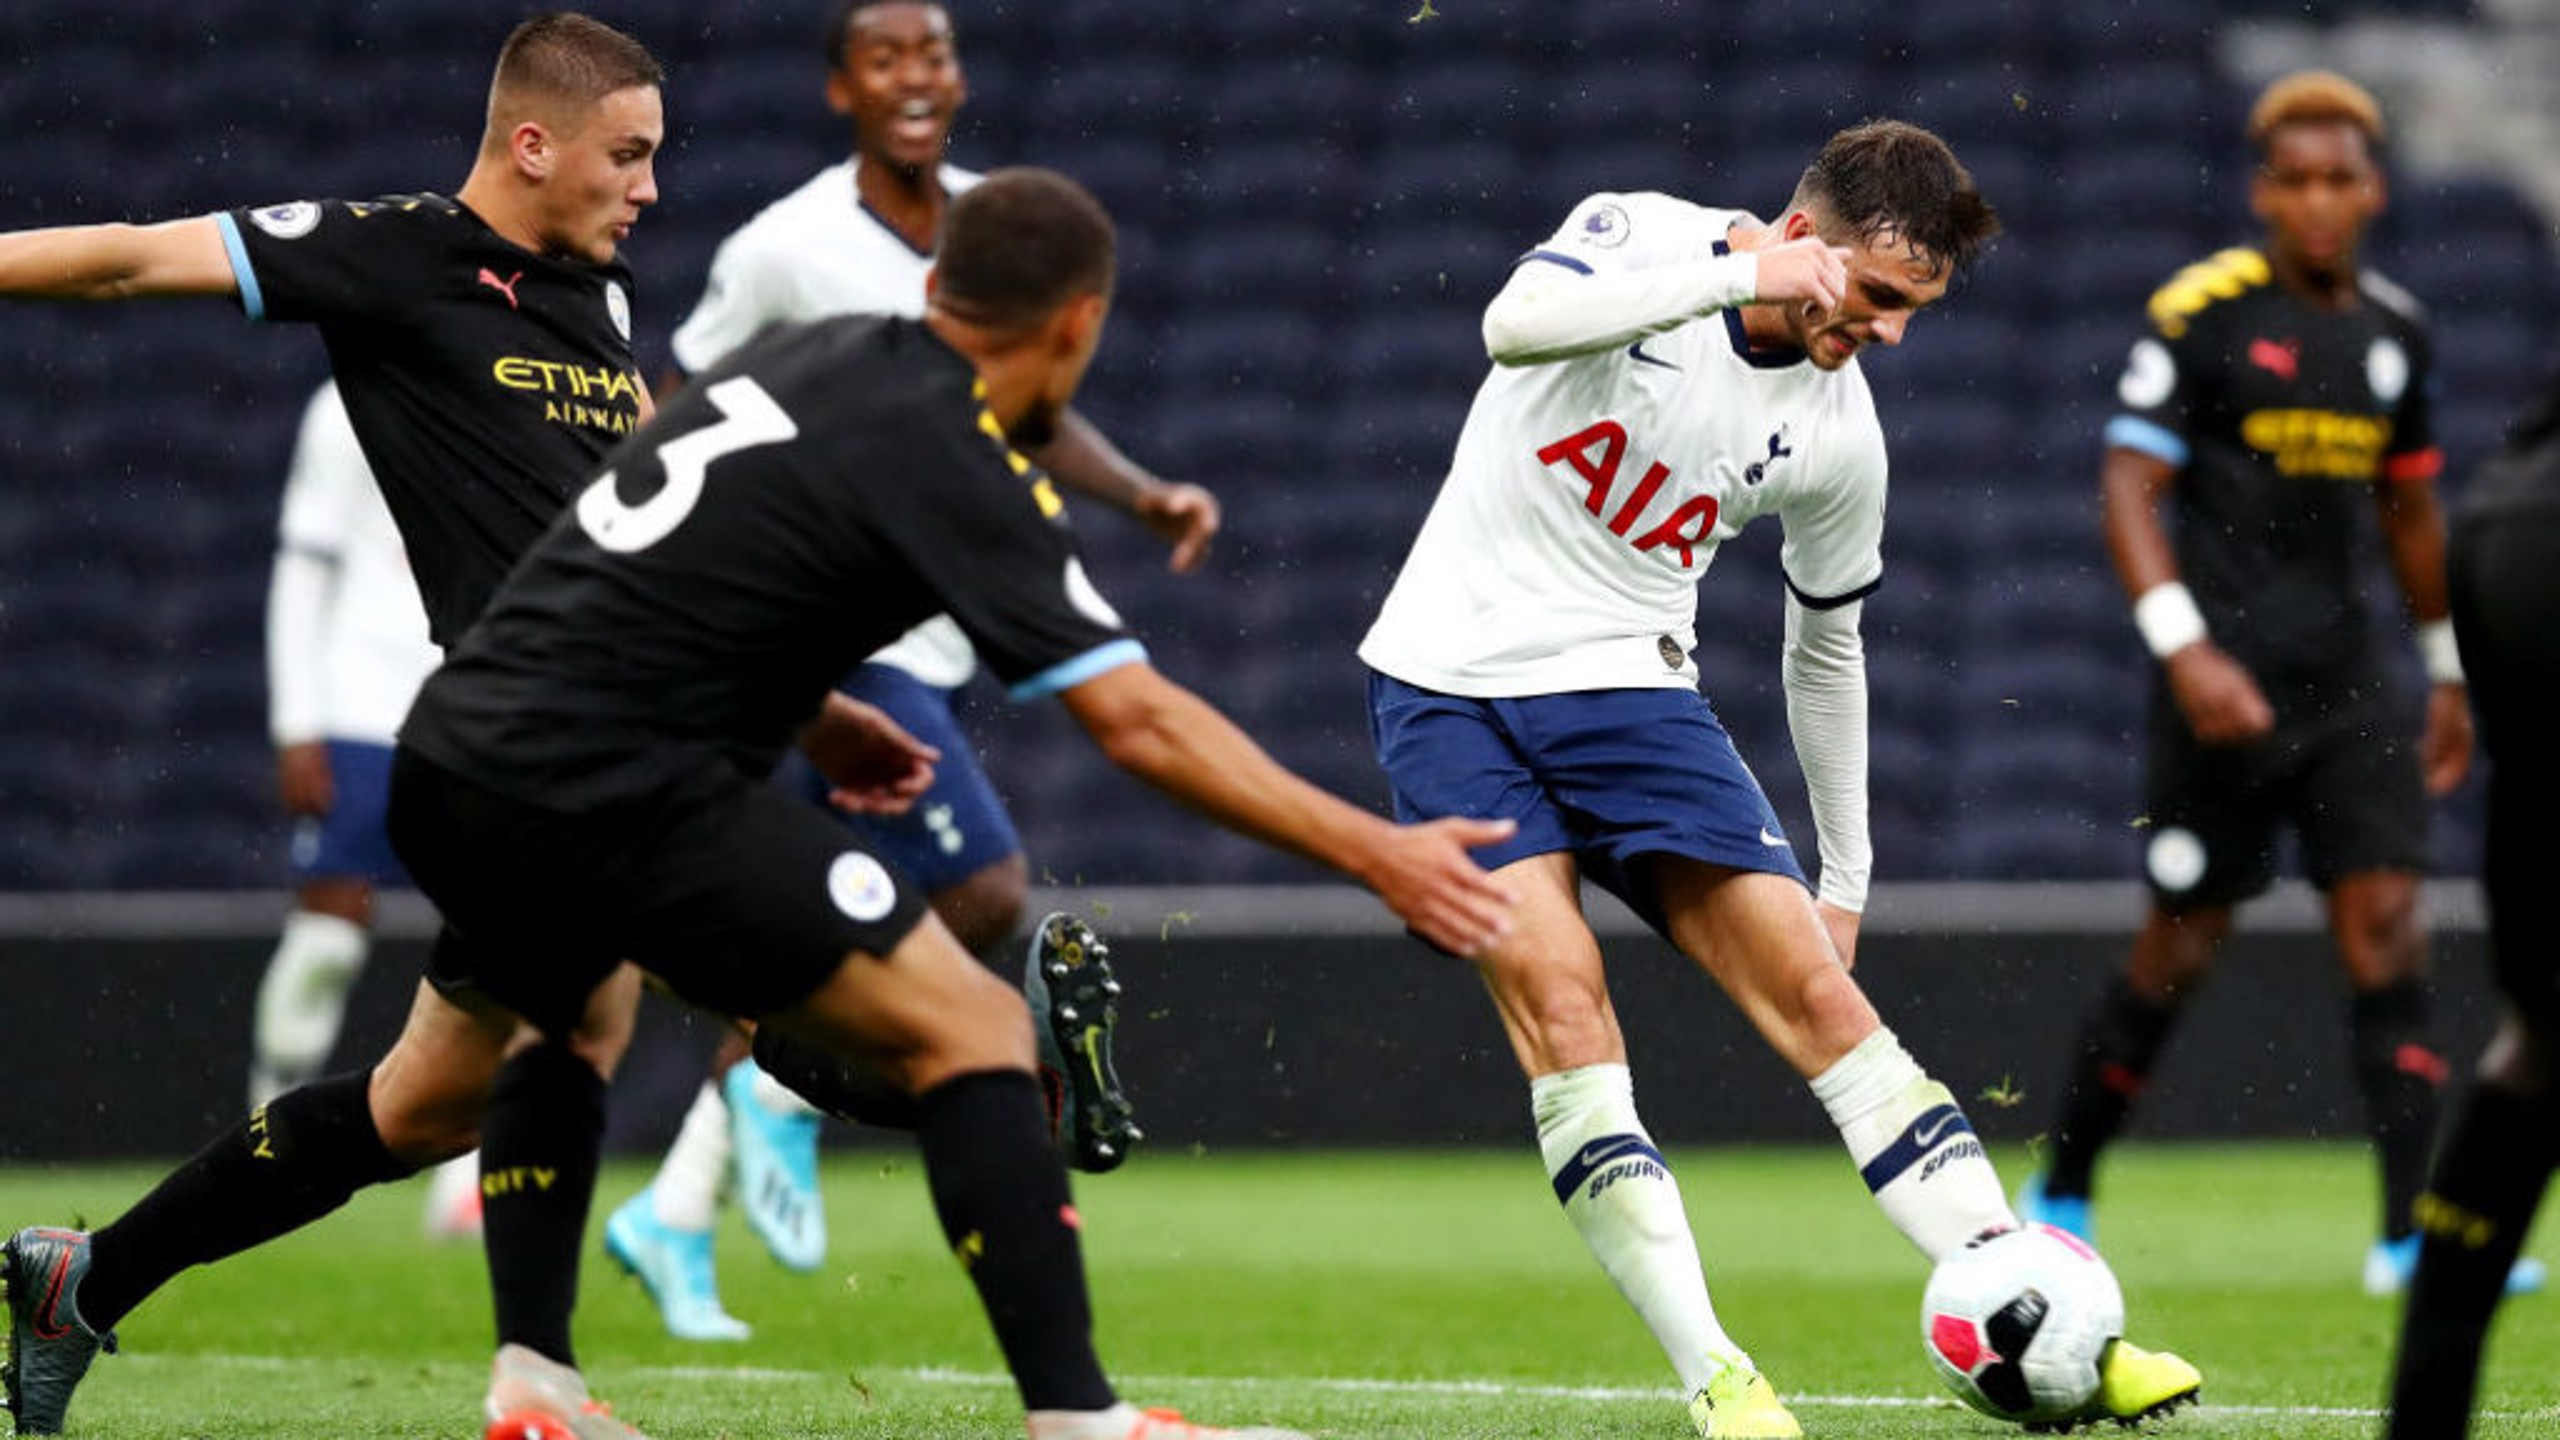 City EDS slip up at Spurs